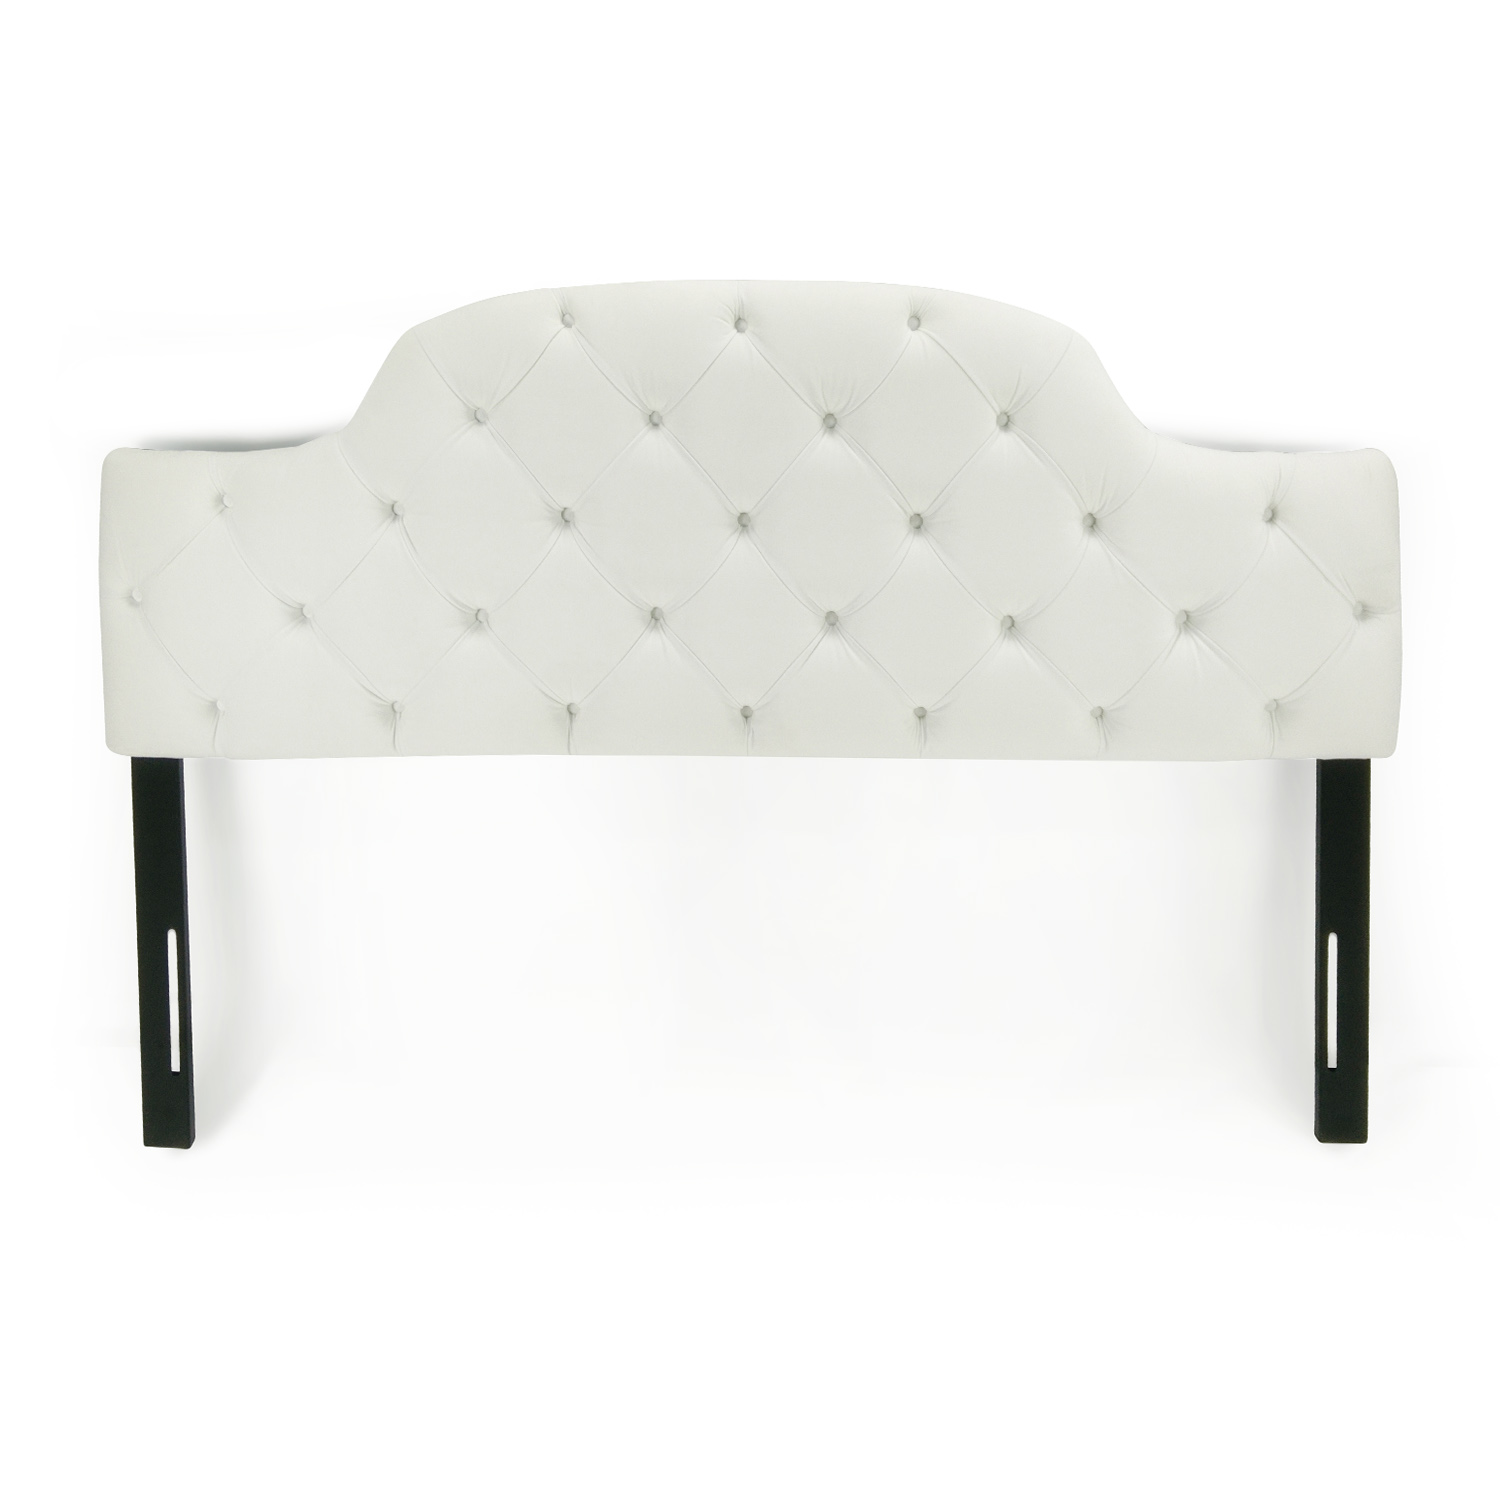 Sleepy's Sleepy's White Tufted King Headboard nj